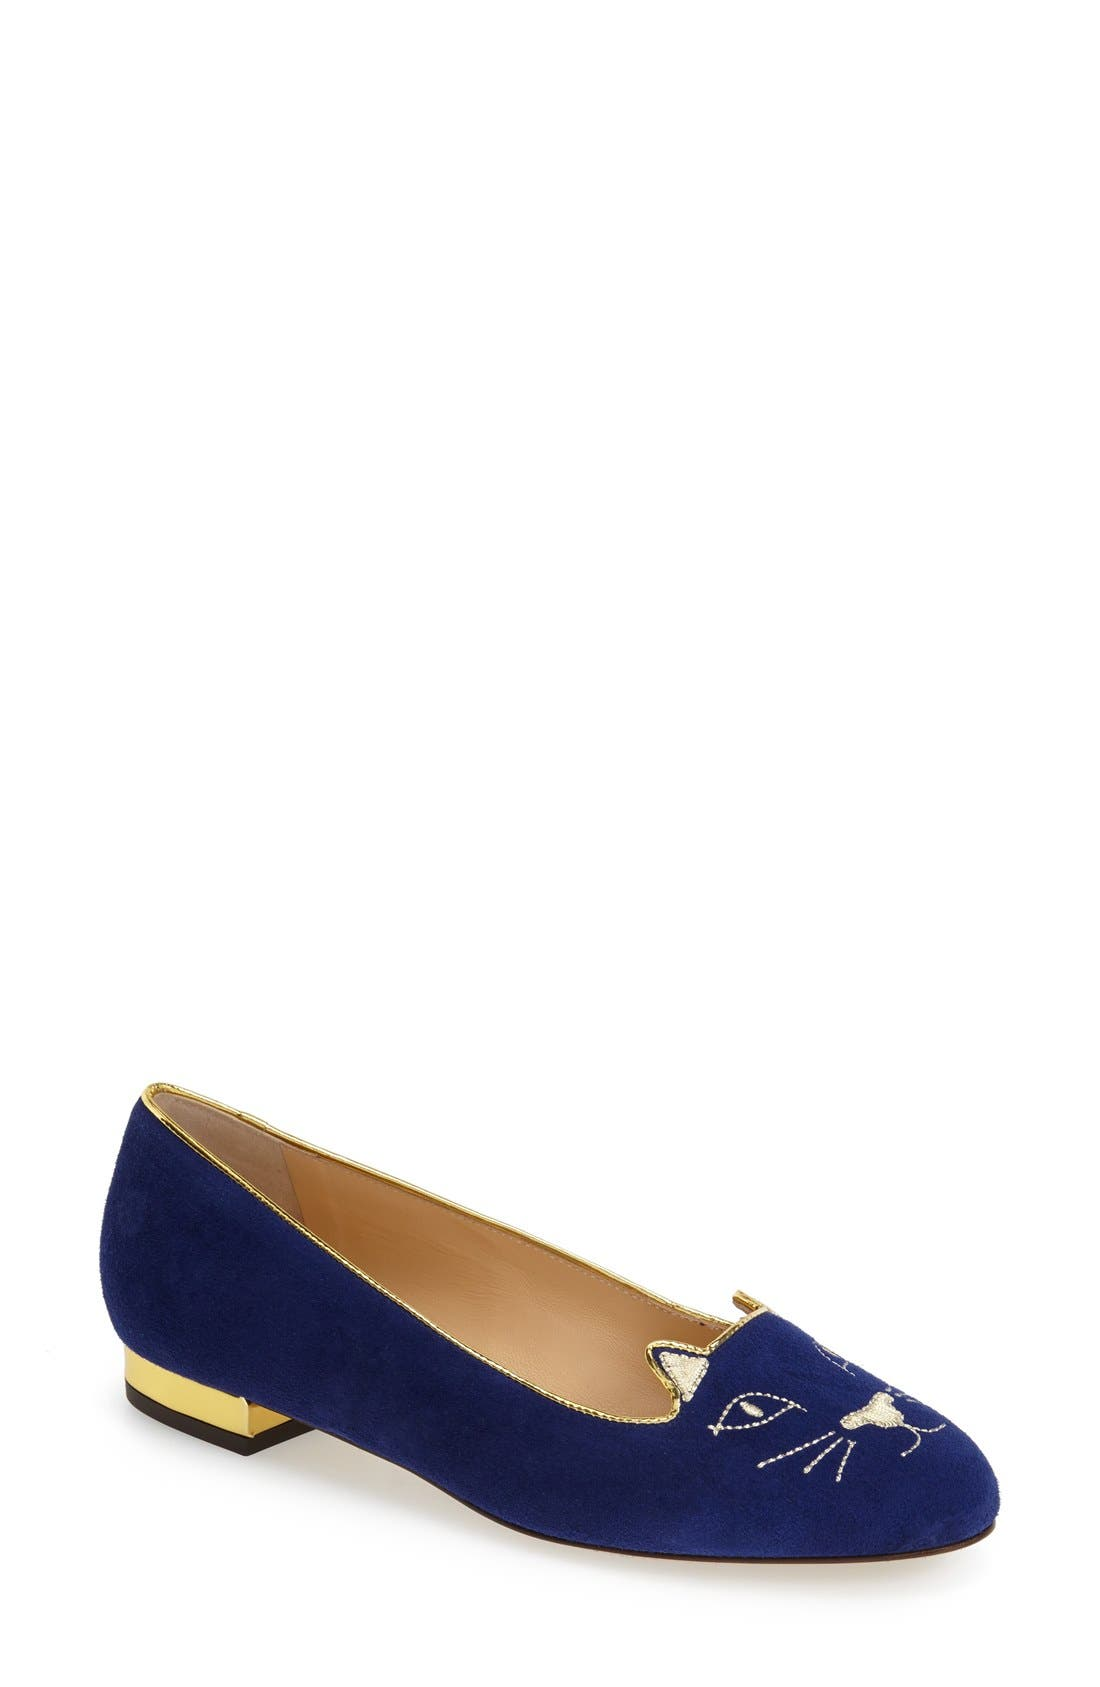 Alternate Image 1 Selected - Charlotte Olympia 'Kitty' Suede Flat (Nordstrom Exclusive)